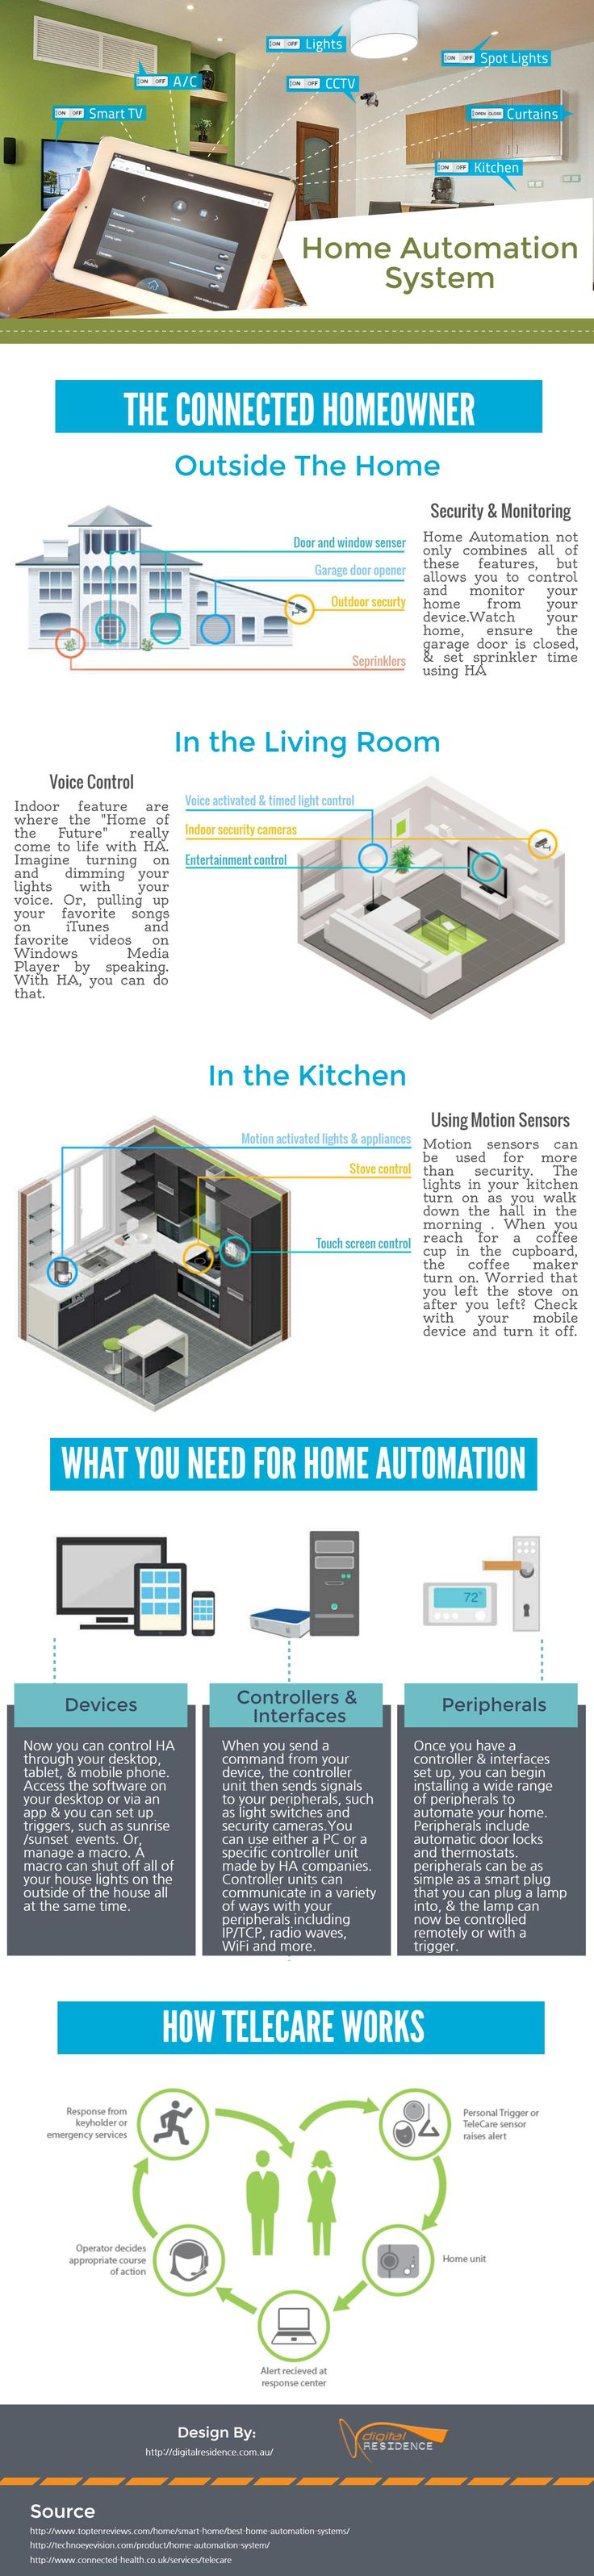 25+ Best Home Automation System Ideas On Pinterest